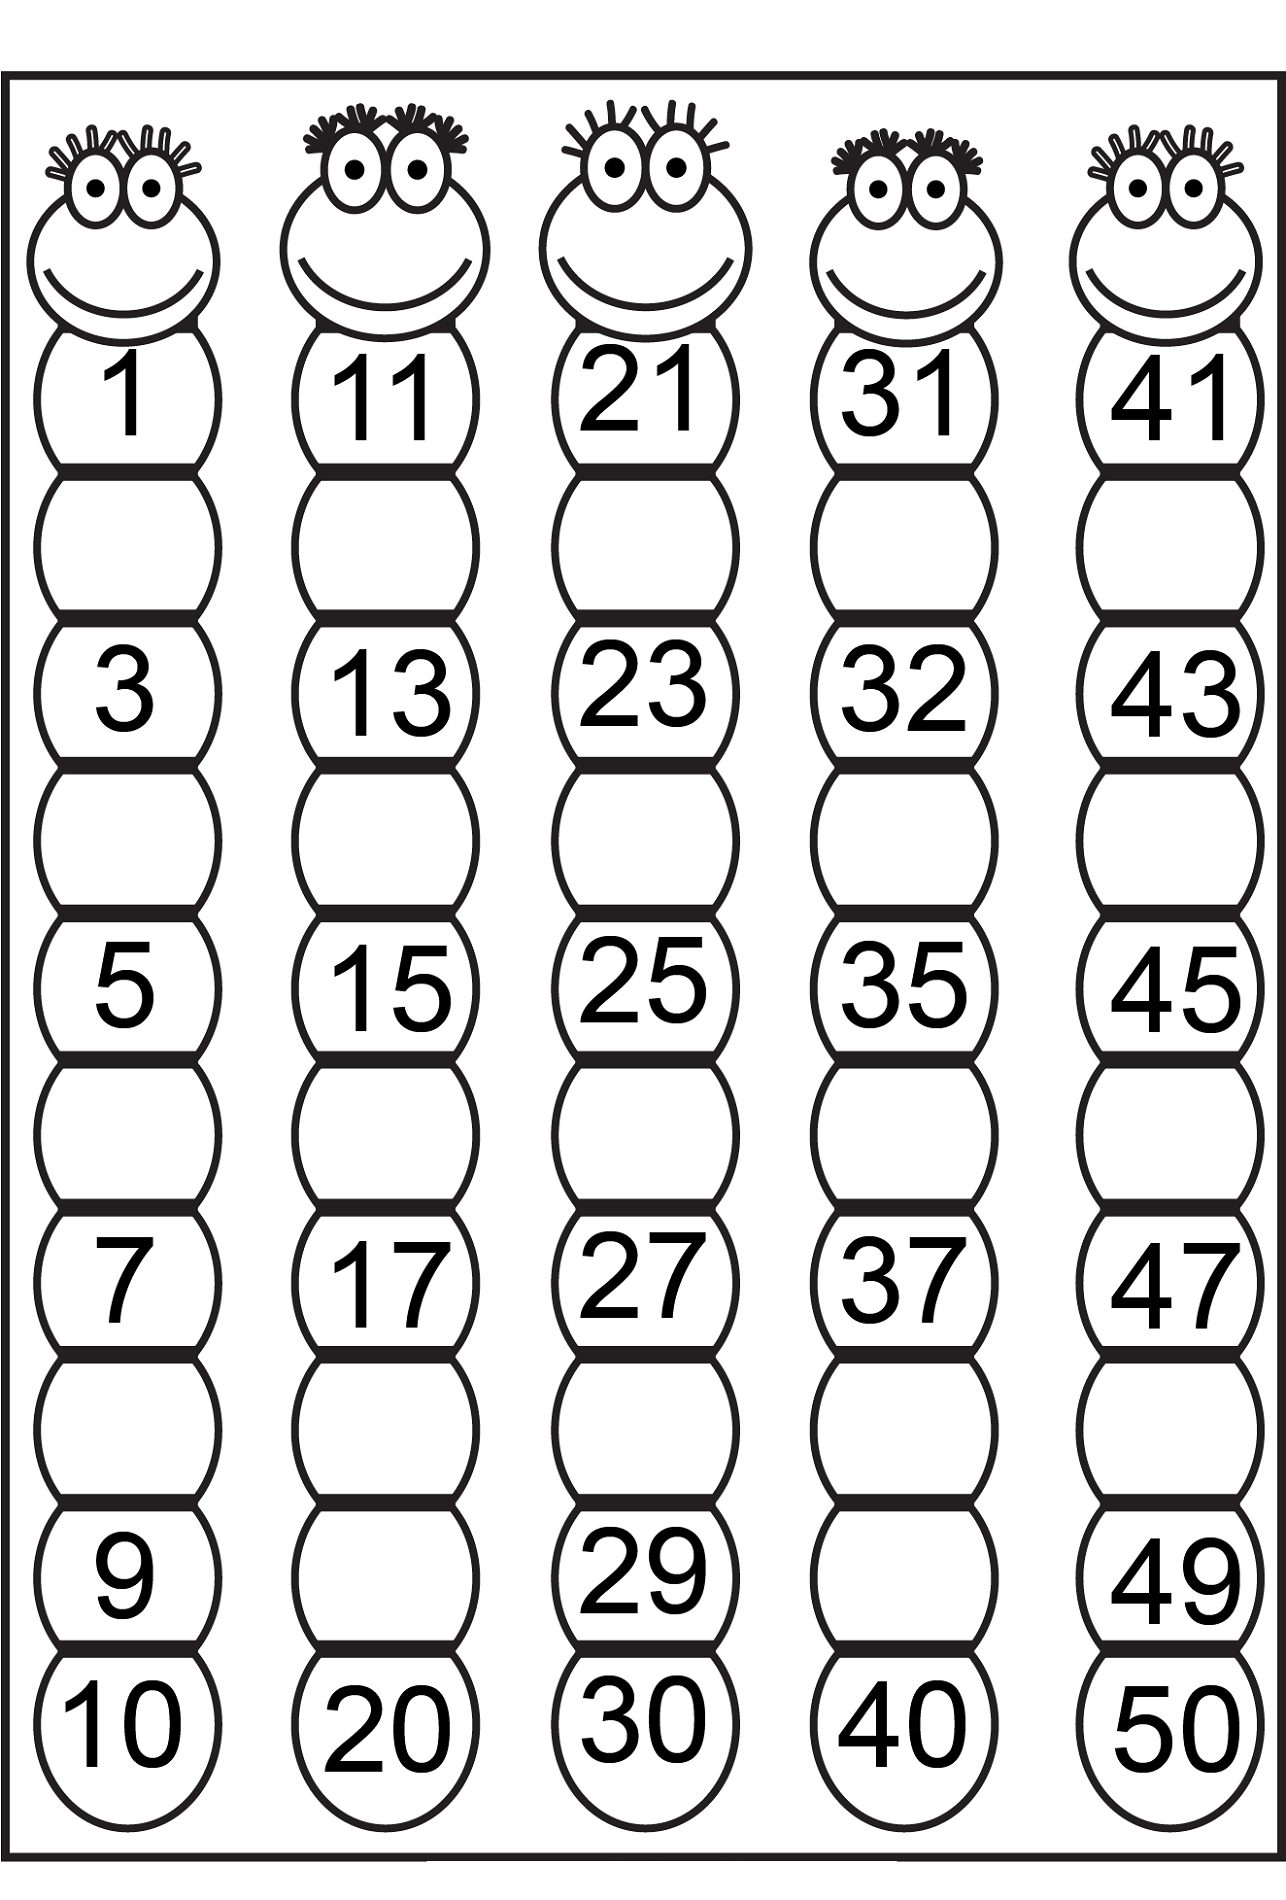 1-50 number chart for school